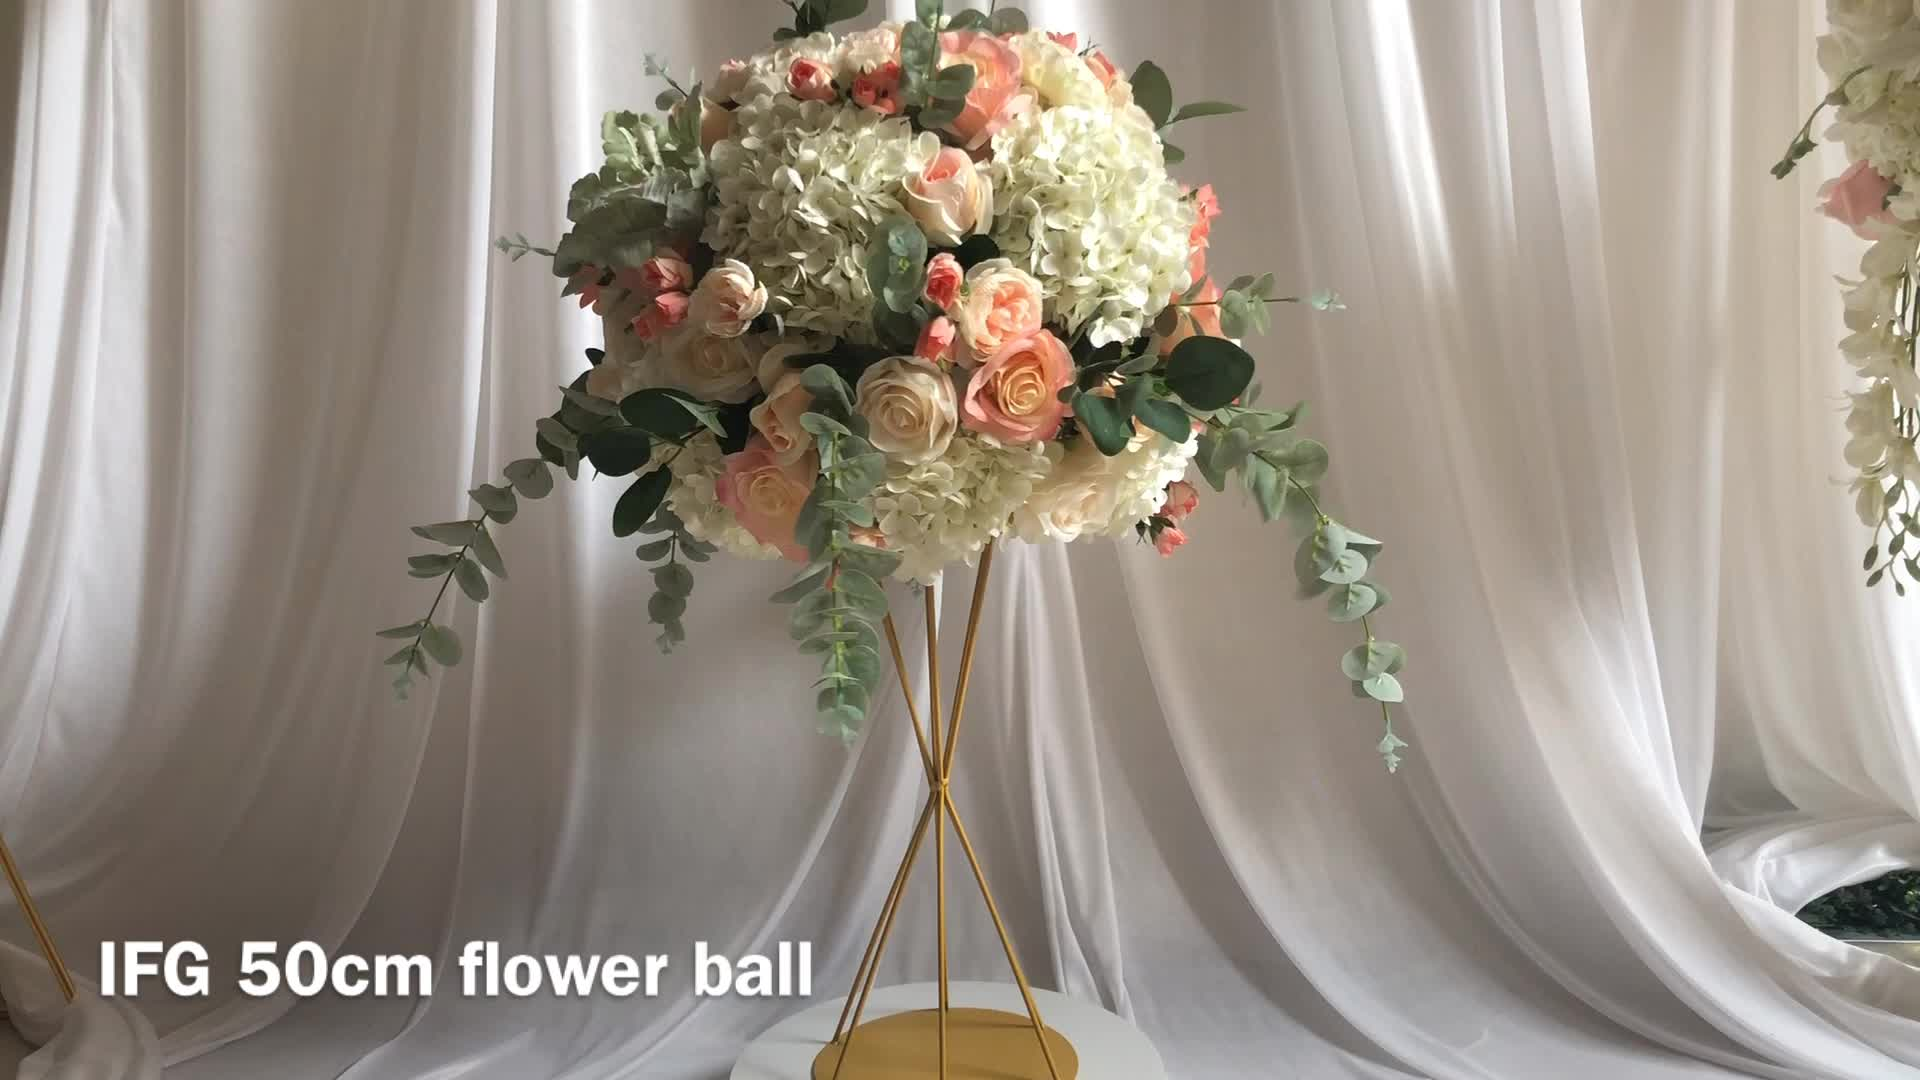 Ifg Artificial Table Flower Ball Wedding Centerpieces - Buy Flower ...